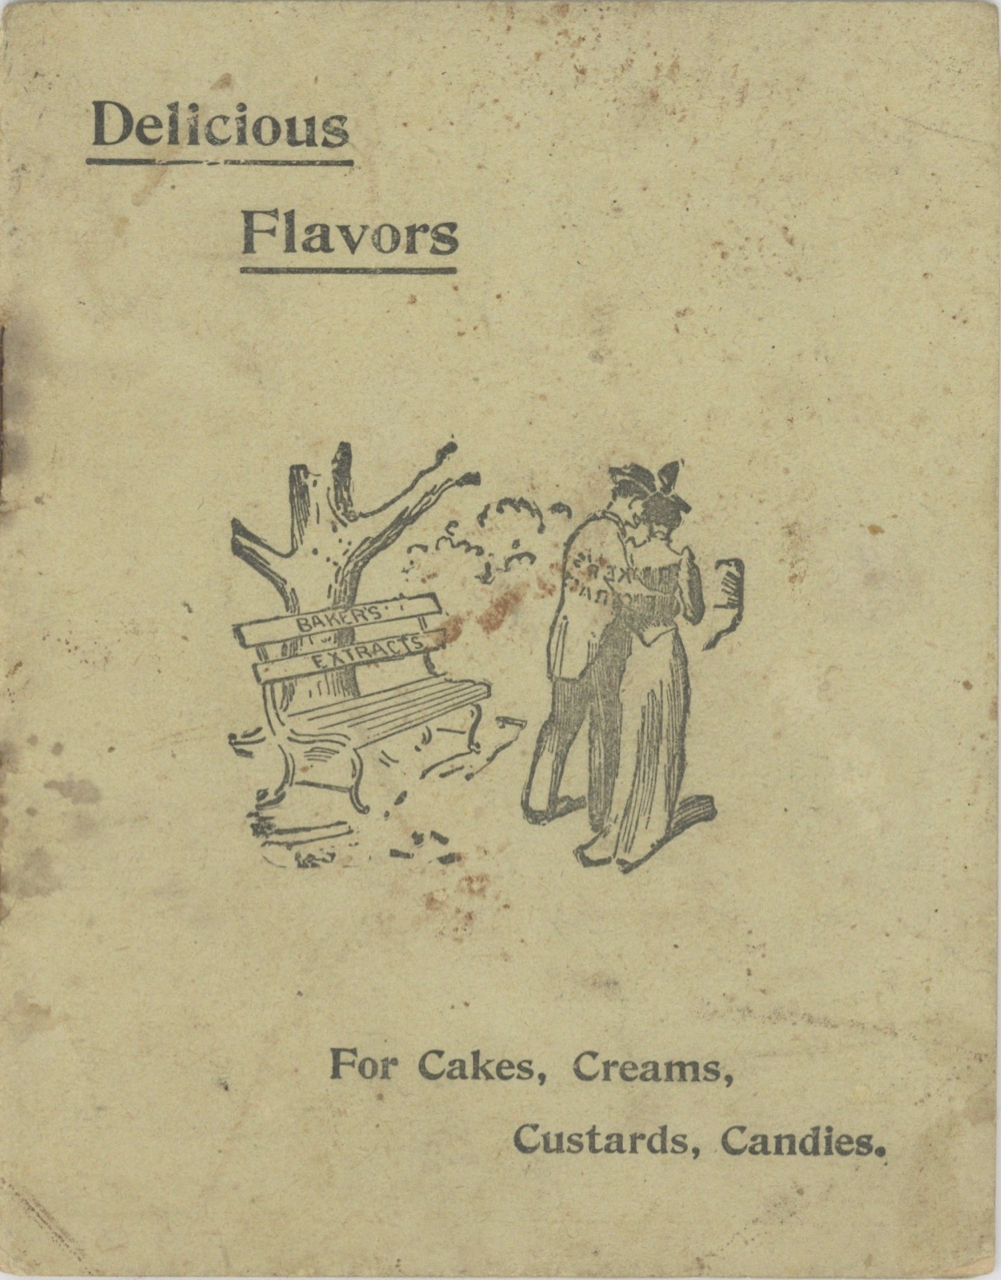 Delicious Flavors. For cakes, creams, custards, candies. [cover title]. Baker Extract Company, Maine Portland.